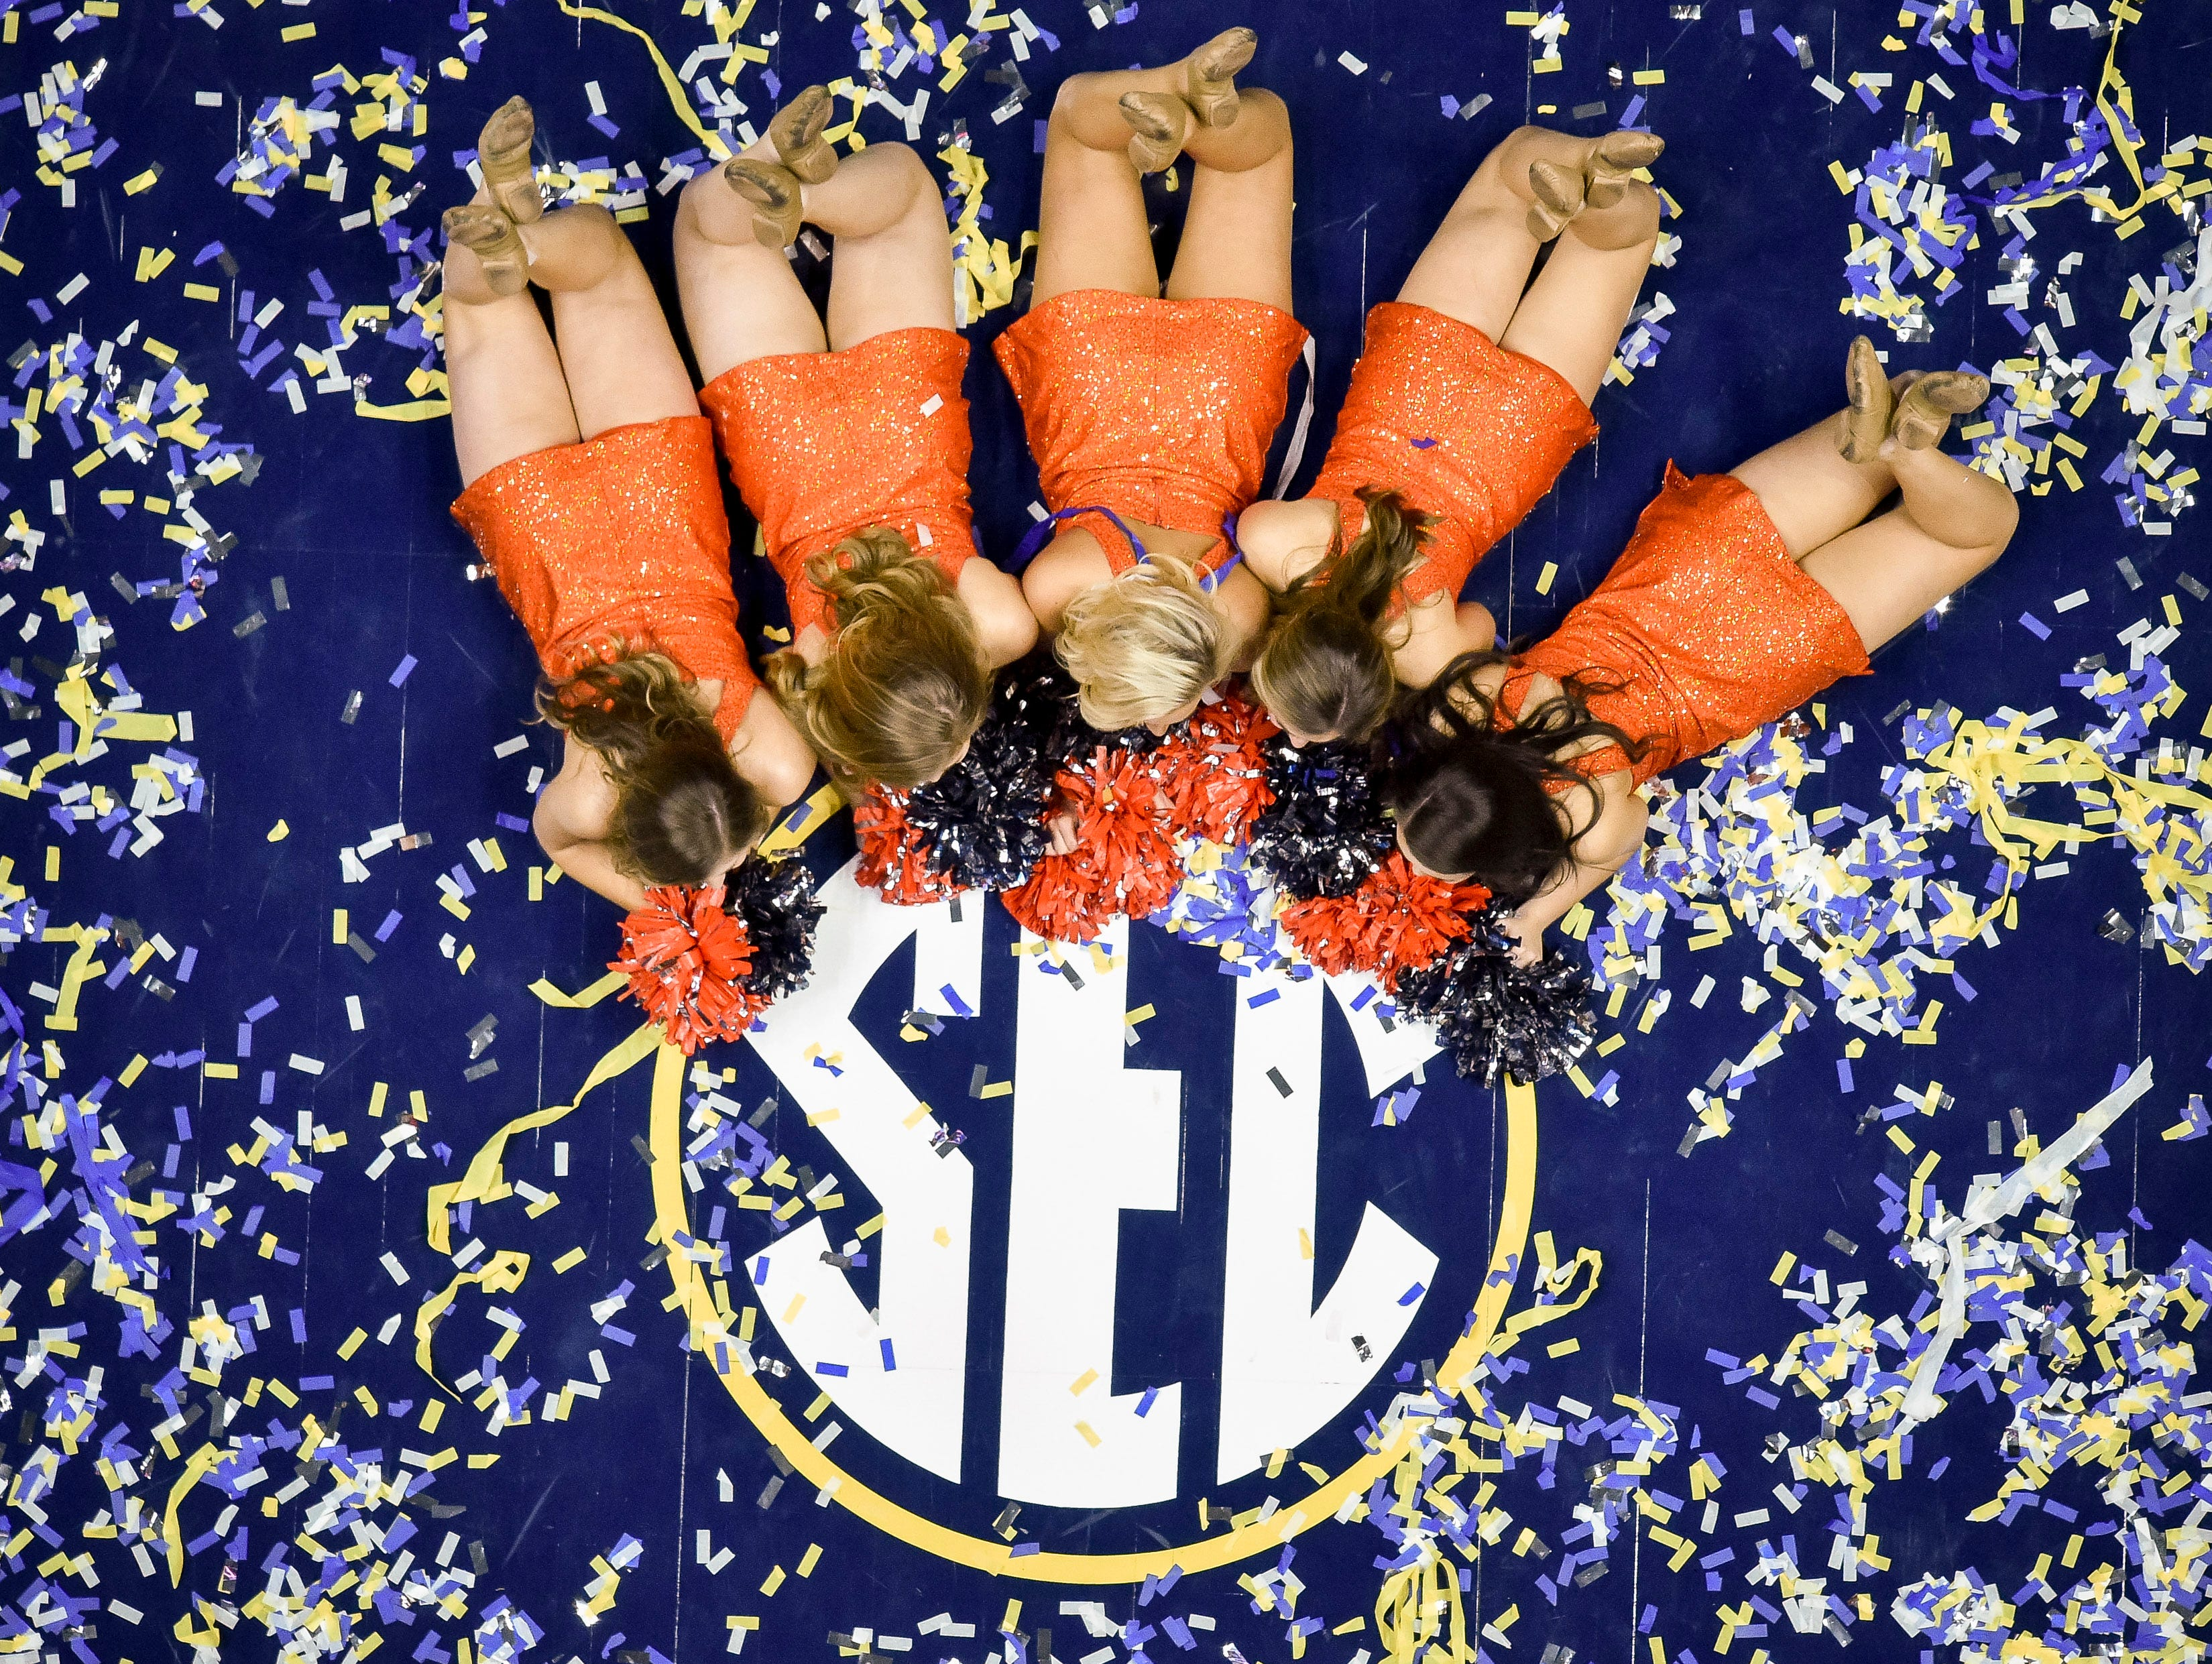 The Auburn University Tiger Paws celebrate after Auburn's SEC Men's Basketball Tournament championship victory against Tennessee at Bridgestone Arena in Nashville, Tenn., Sunday, March 17, 2019.